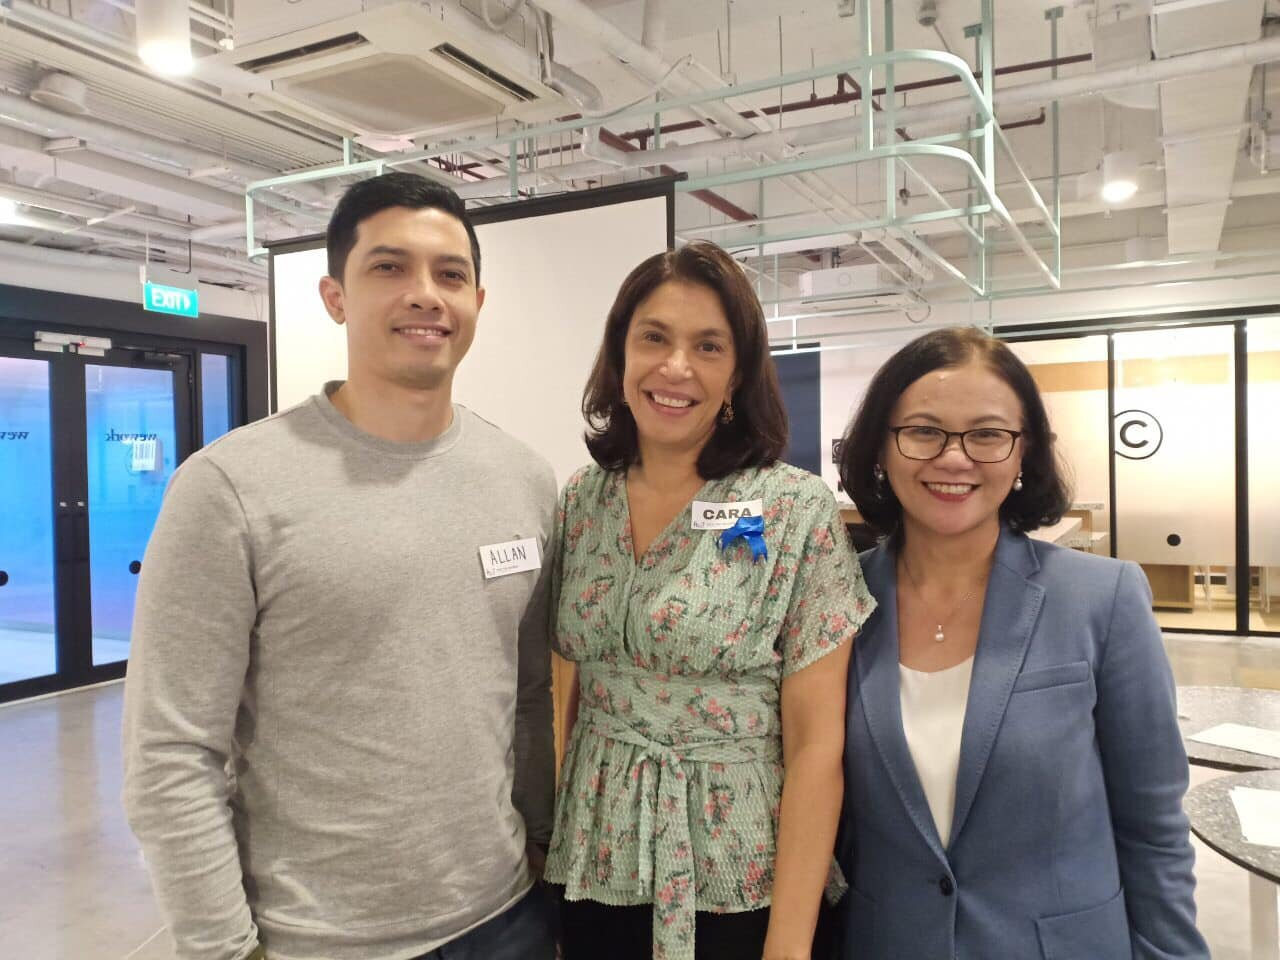 From L-R: Accenture Managing Director and Male Ally, Allan Caballero, Co-Founder of For the Women (FTW) Foundation, Cara Wilson and Accenture Senior Managing Director and Global Artificial Intelligence Lead, Ambe Tierro.